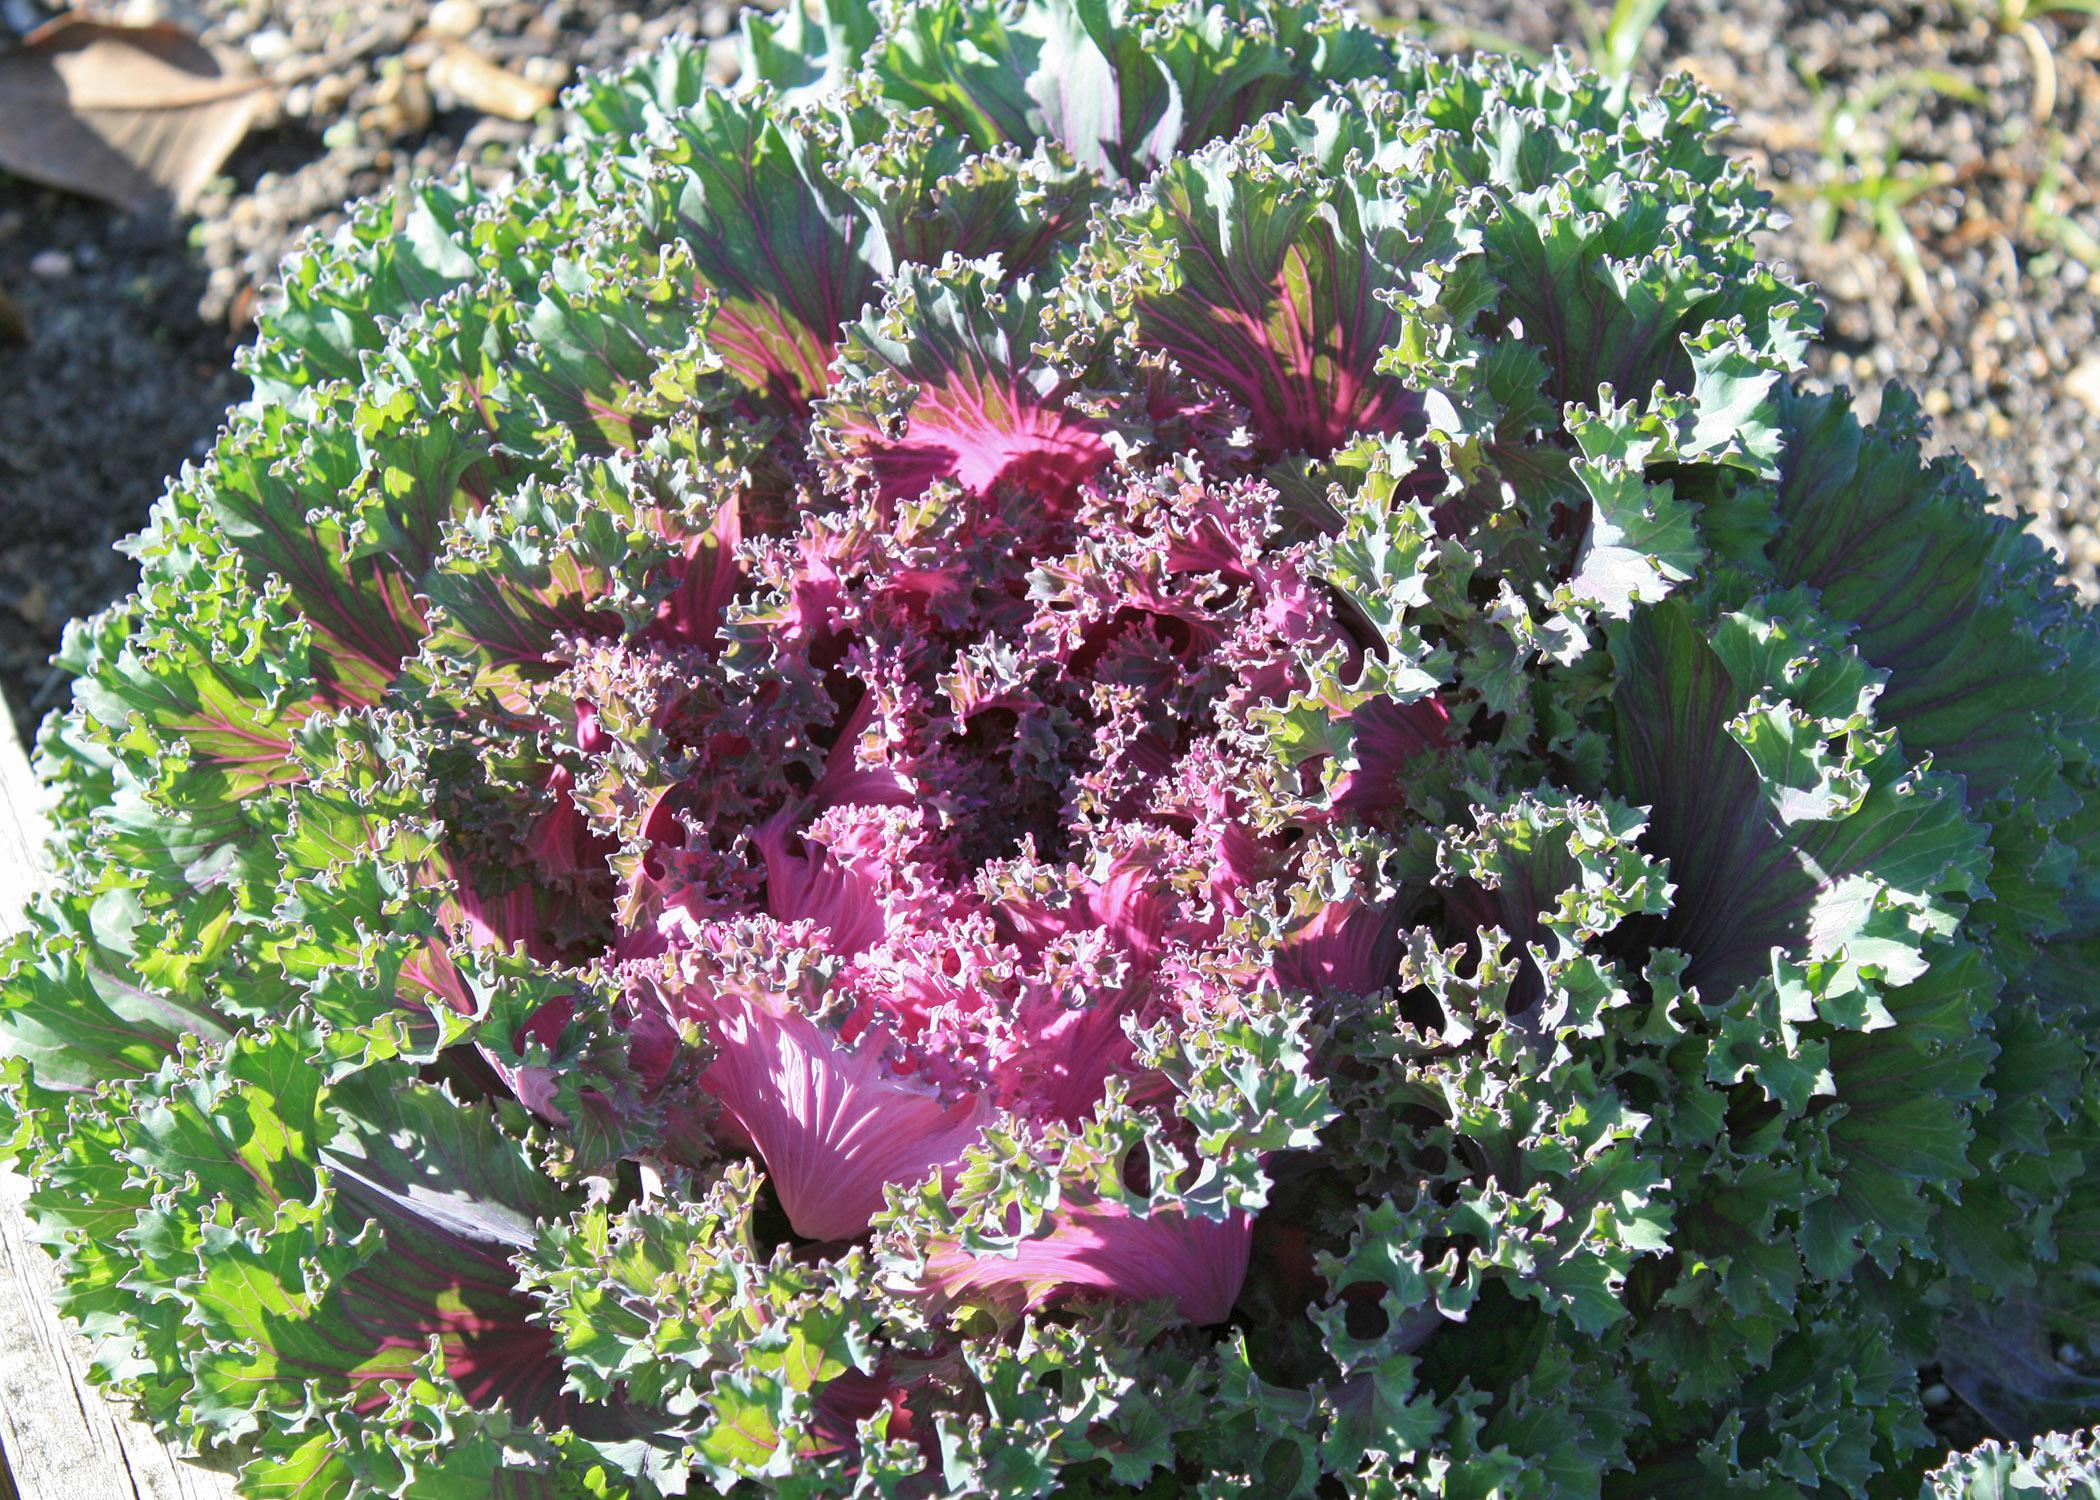 Chidori Red kale has extremely colorful, loose heads. New foliage is a bright magenta red, and mature leaves take on a darker green. (Photo by MSU Extension Service/Gary Bachman)